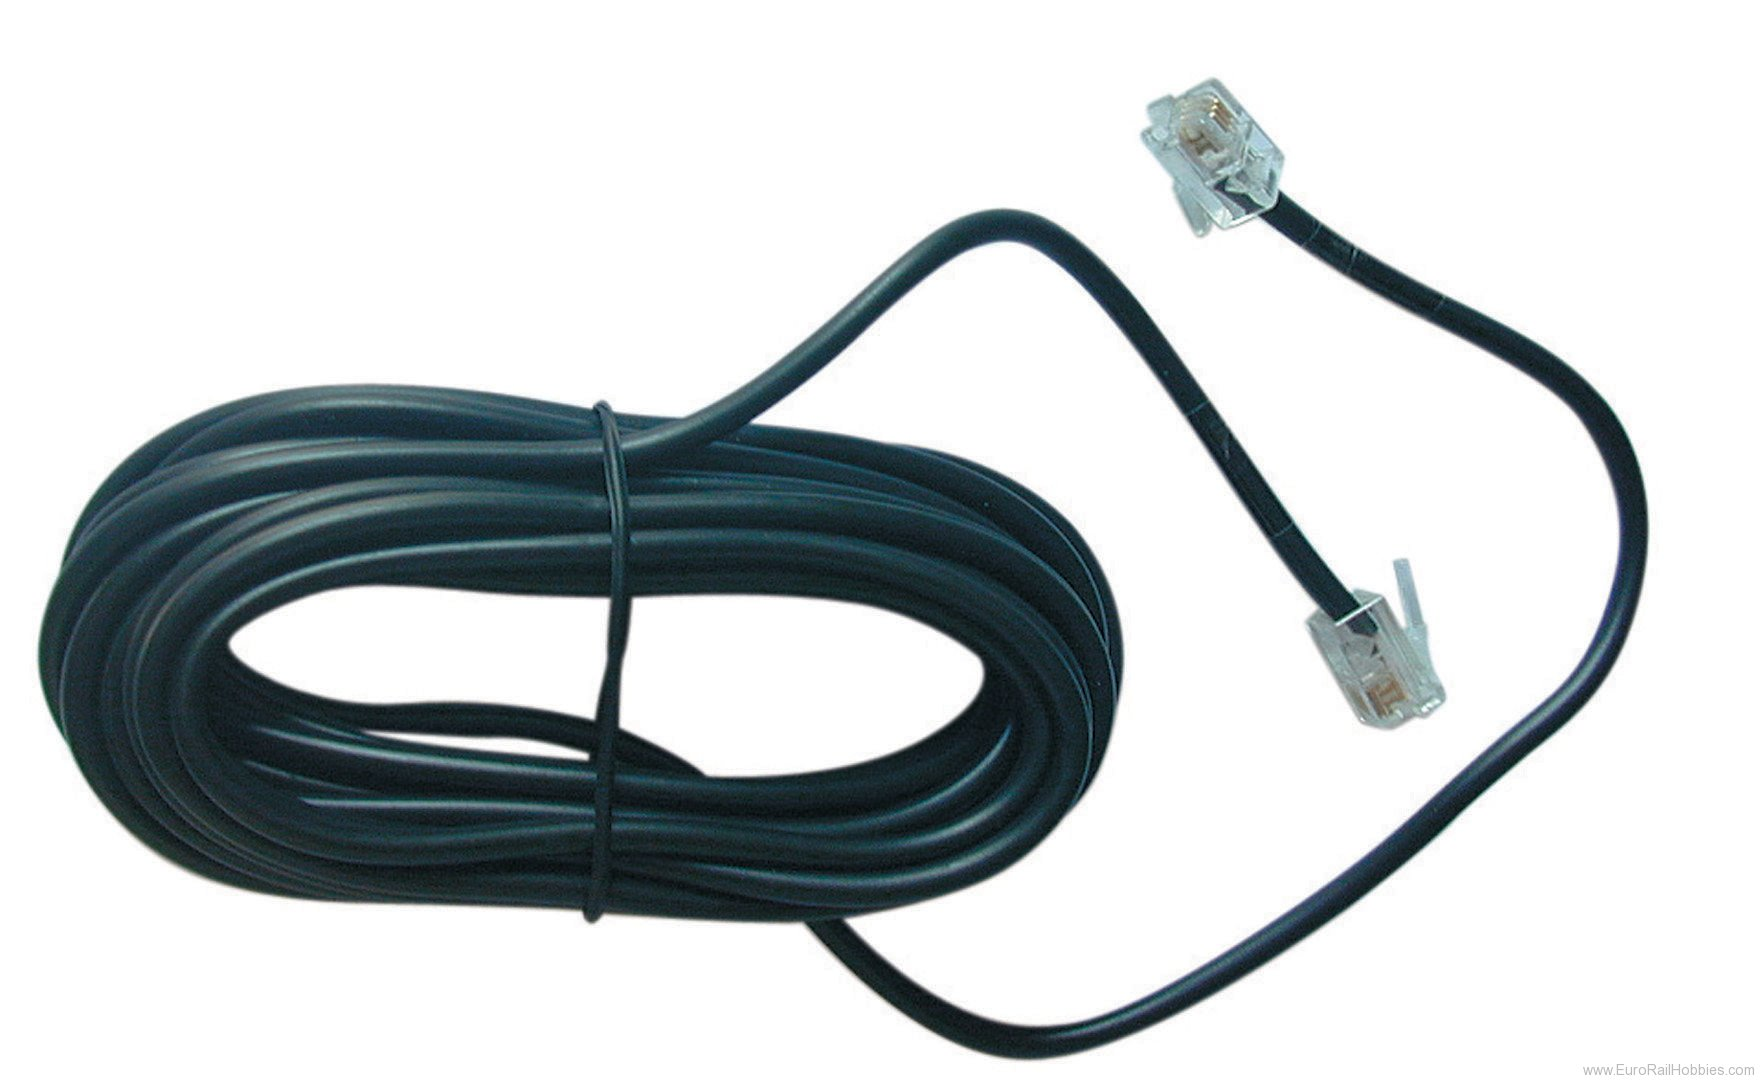 Roco 10757 Digital Booster Connection Cable